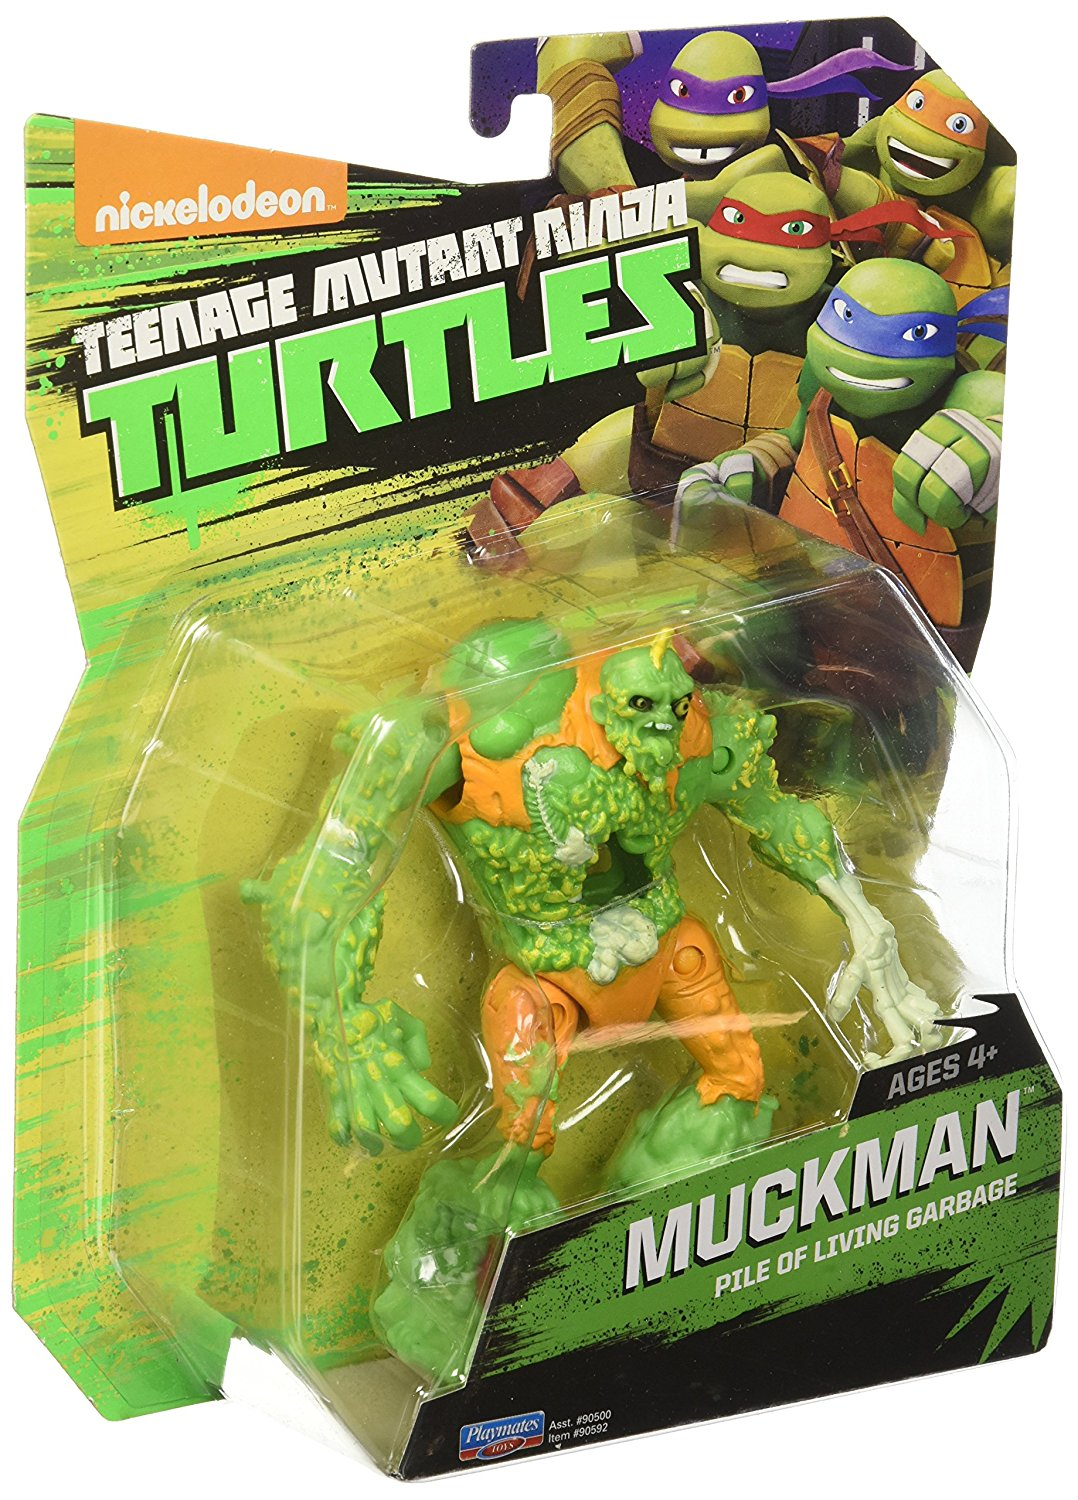 Playmates Toys Teenage Mutant Ninja Turtles Muckman Figure 11 99